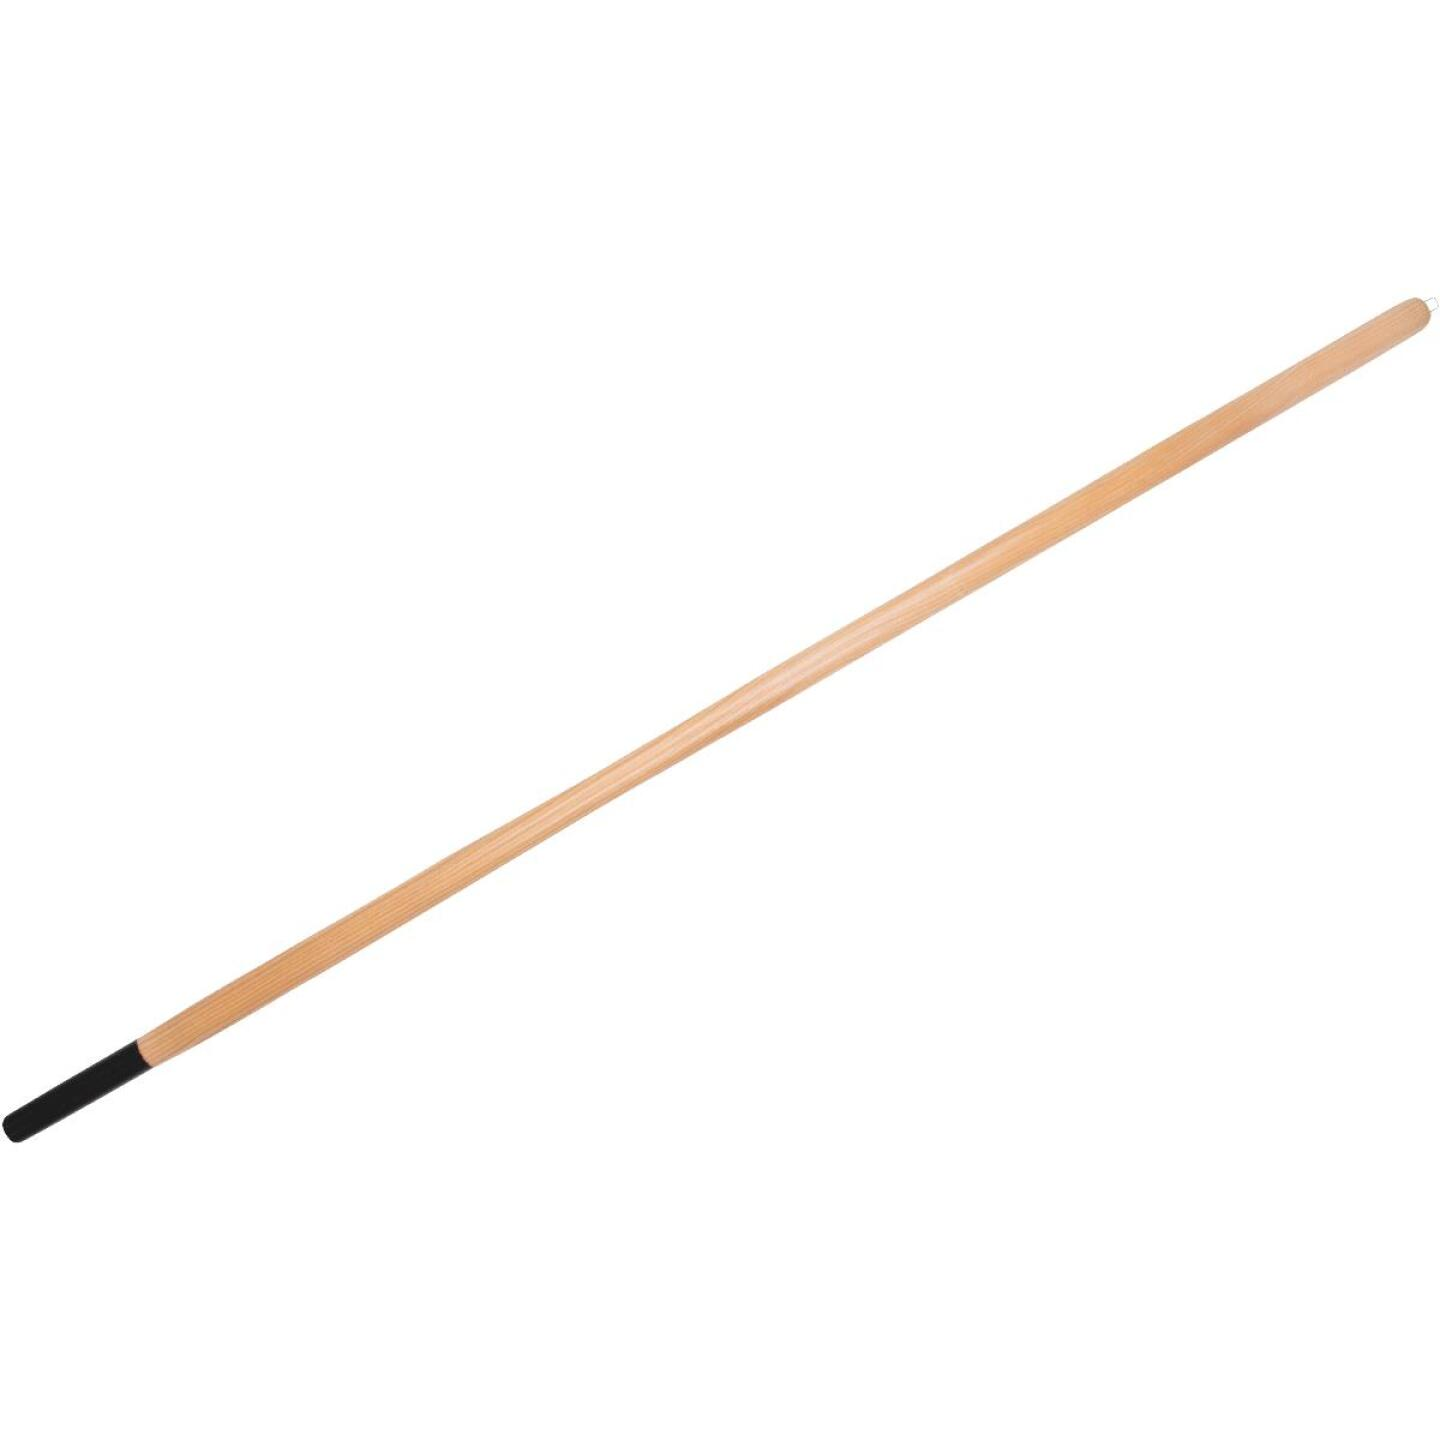 Truper 54 In. L x 1.25 In. Dia. Wood Hoe/Hook Replacement Handle Image 1